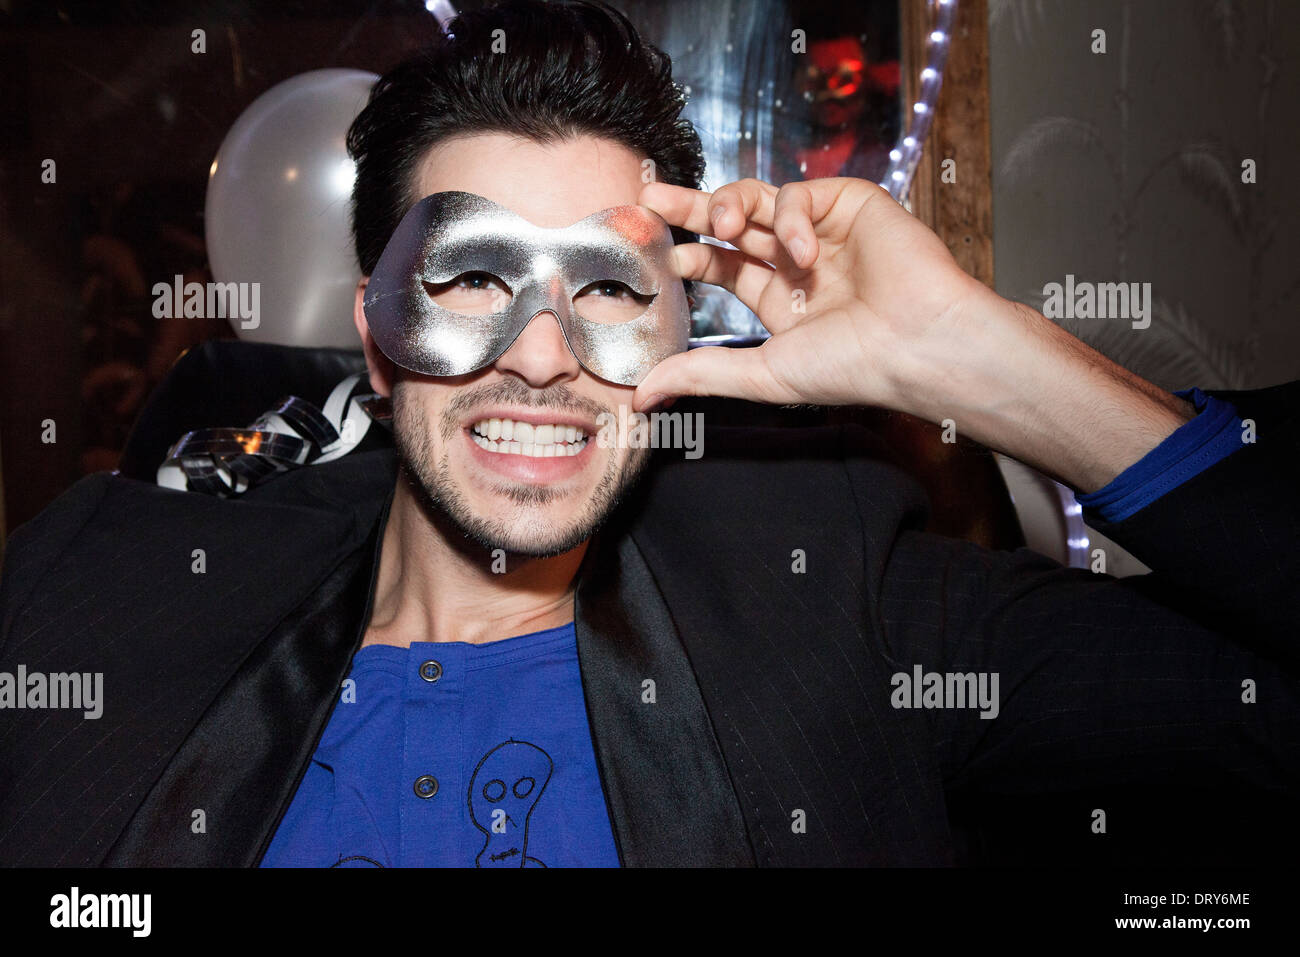 Man wearing party mask, portrait - Stock Image